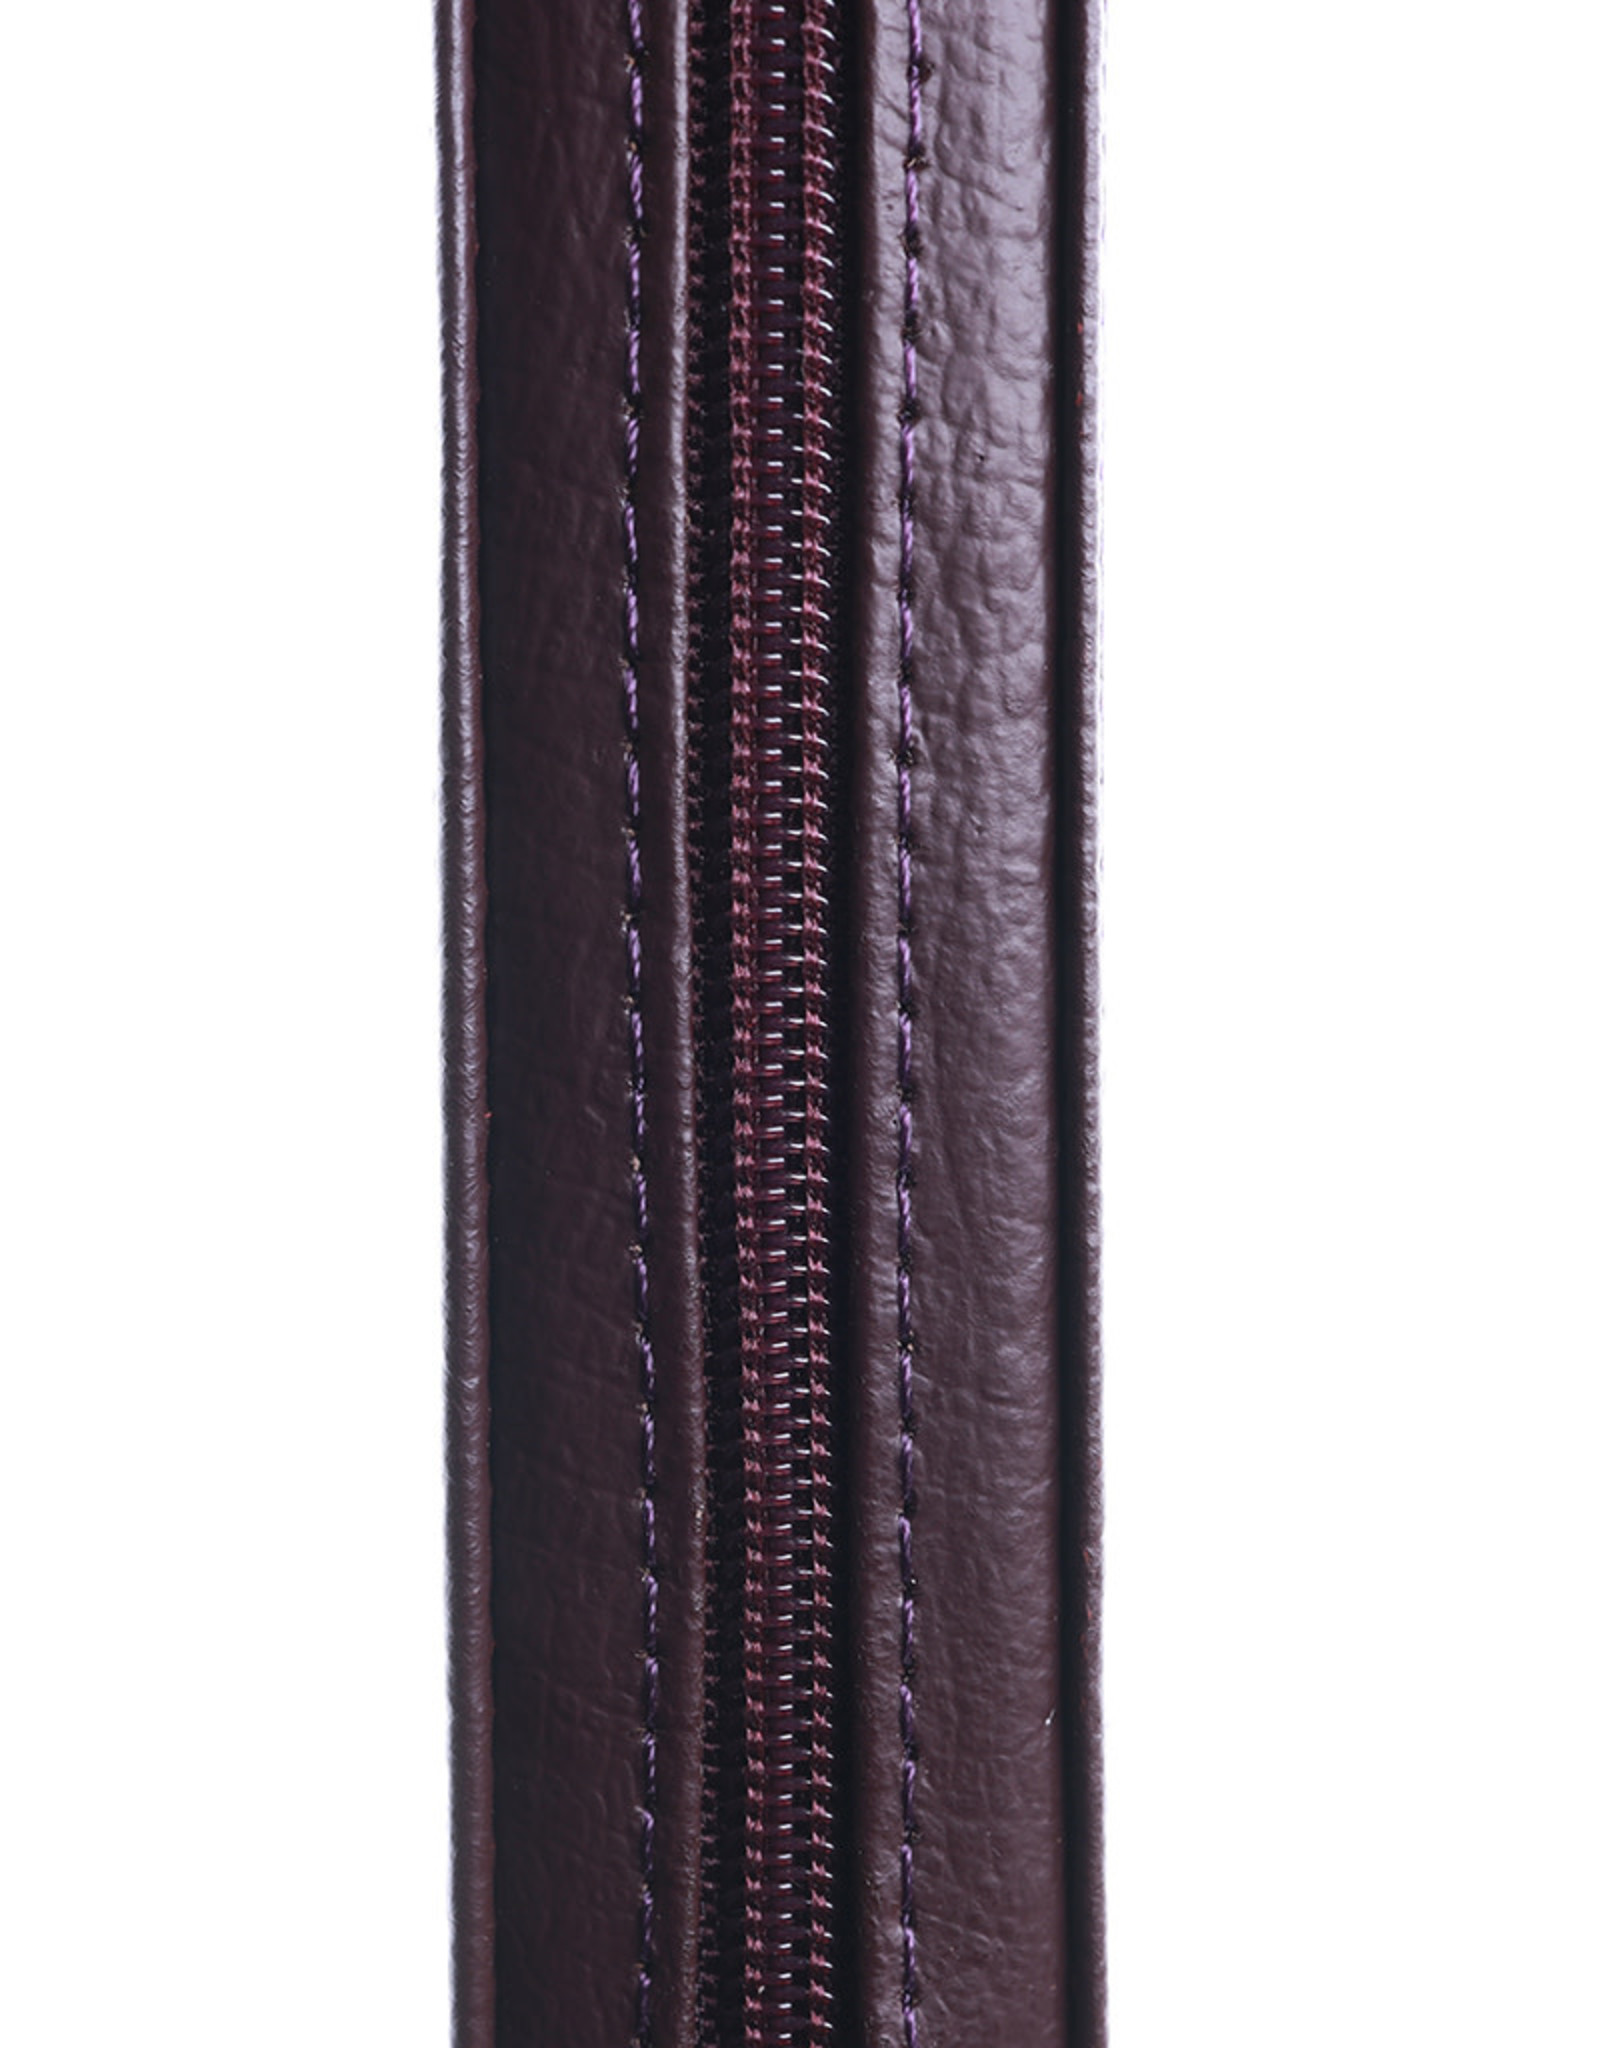 Библия, Каноническая (SYNO), Index, Leather with Zipper, Small Burgundy with Fixing Button